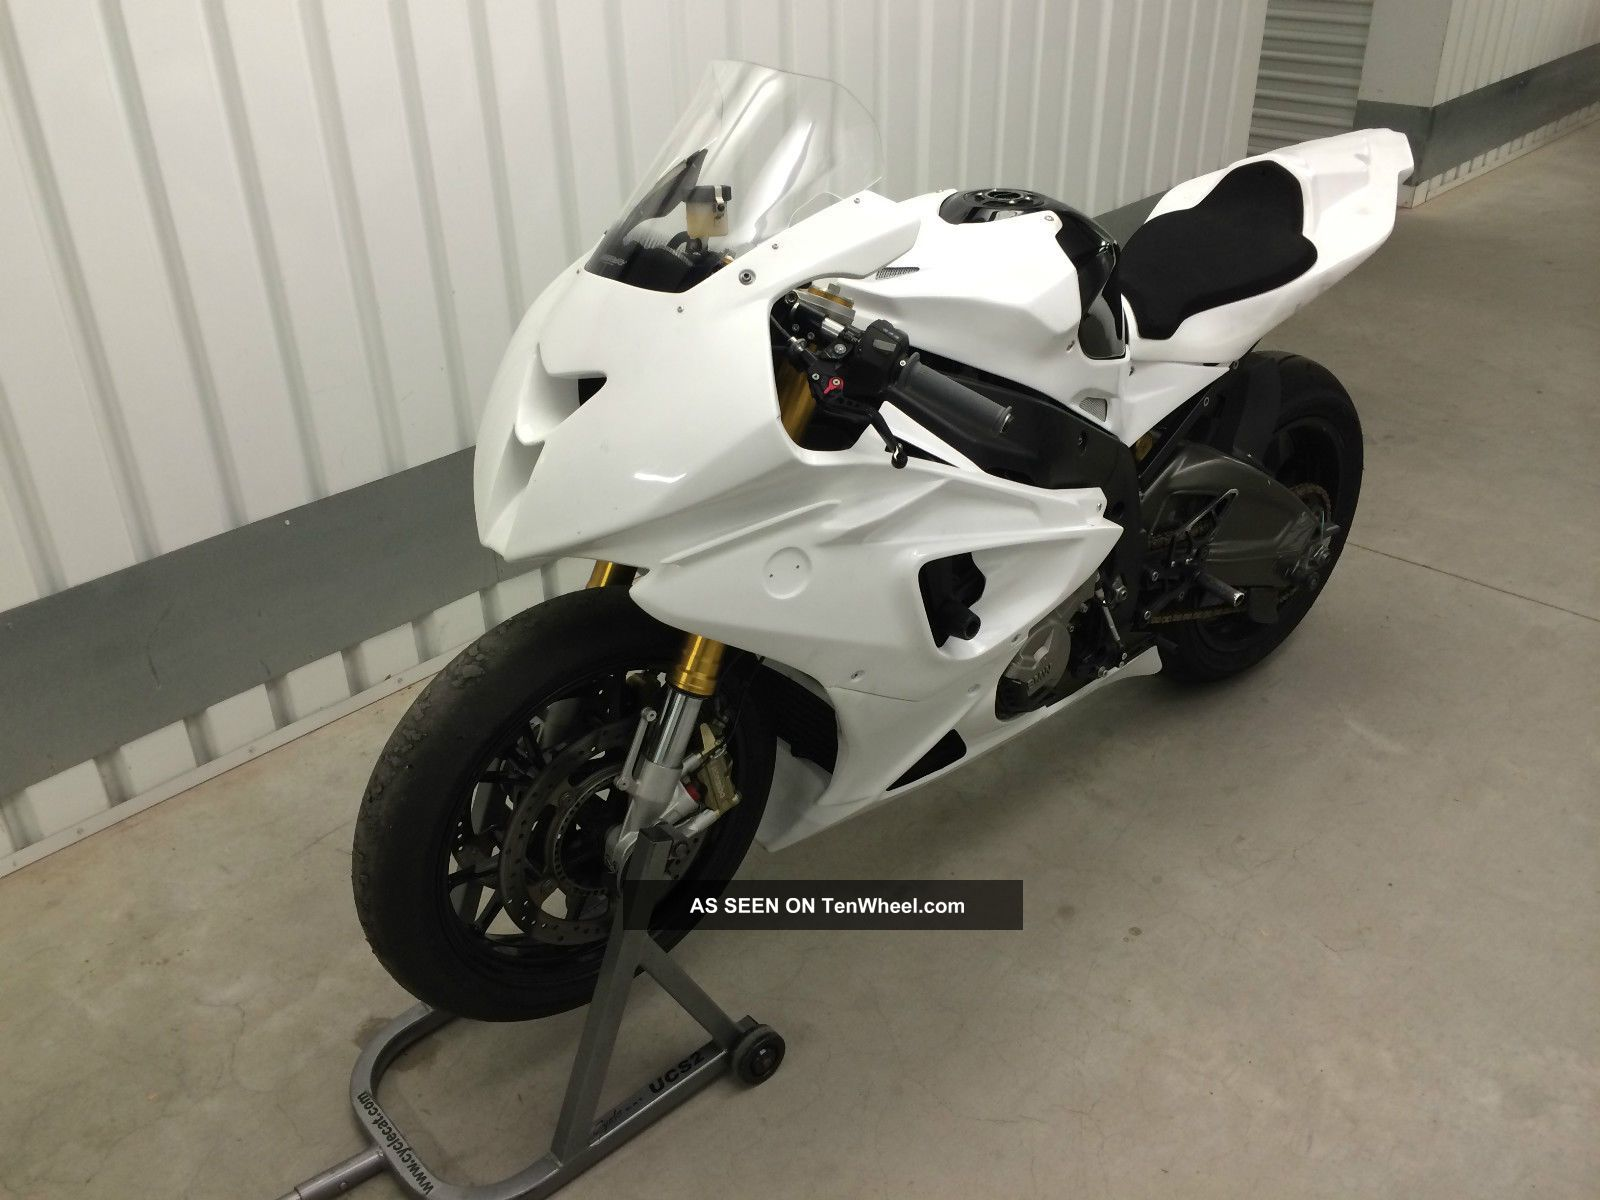 Bmw S1000rr Racebike 2010 (alpharacing) 197 Rwhp Other photo